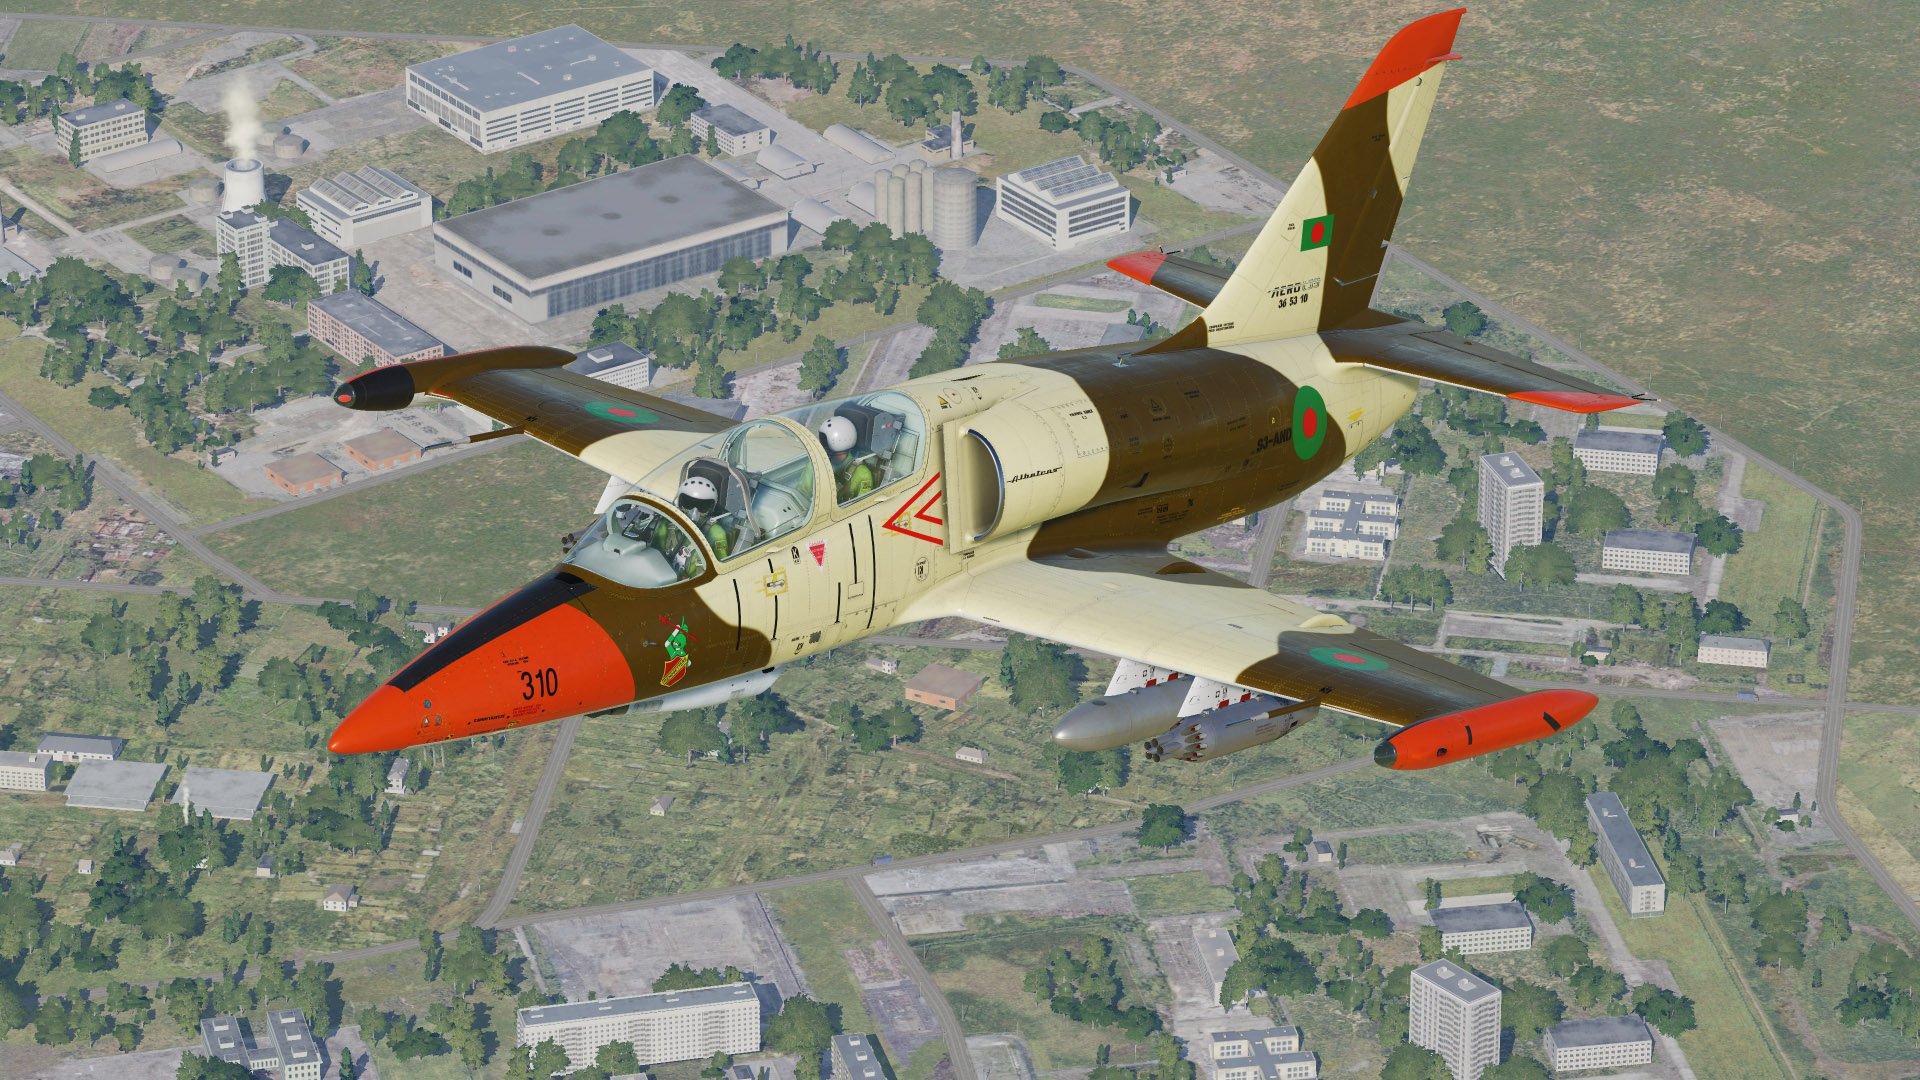 L-39ZA Albatros Bangladesh Air Force